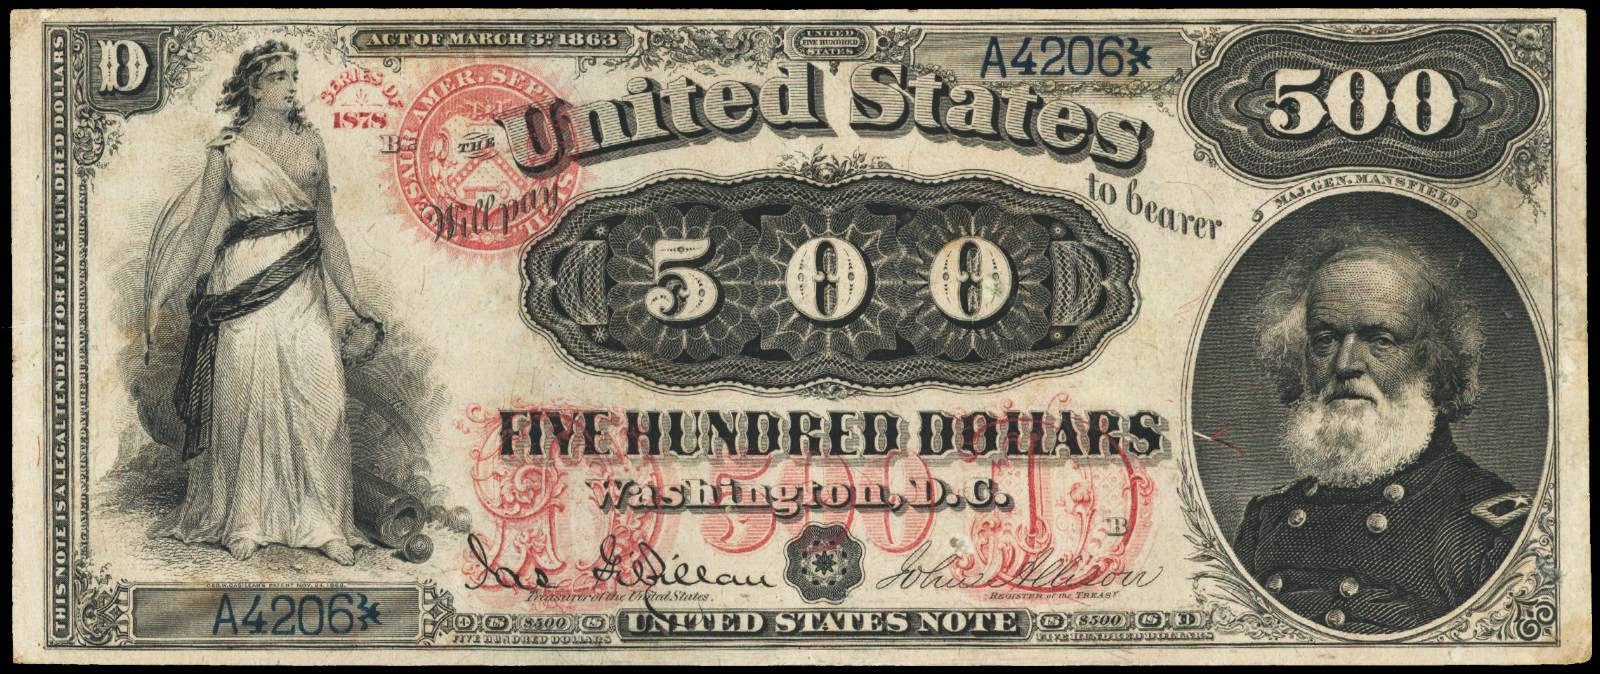 500 Dollar bill note Major General Joseph King Mansfield